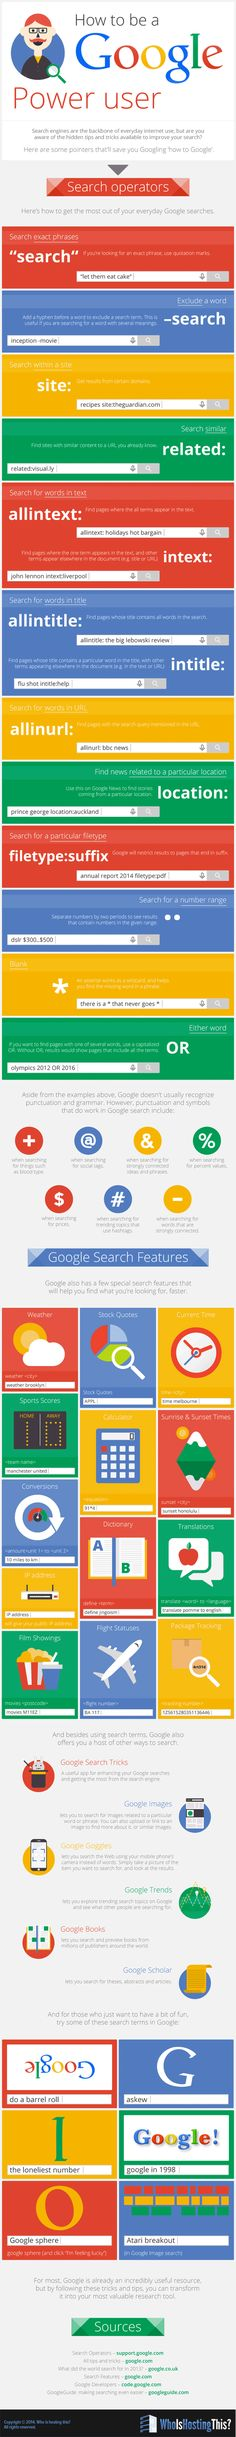 How to Get the Most Out of Your Google Searches | Mental Floss